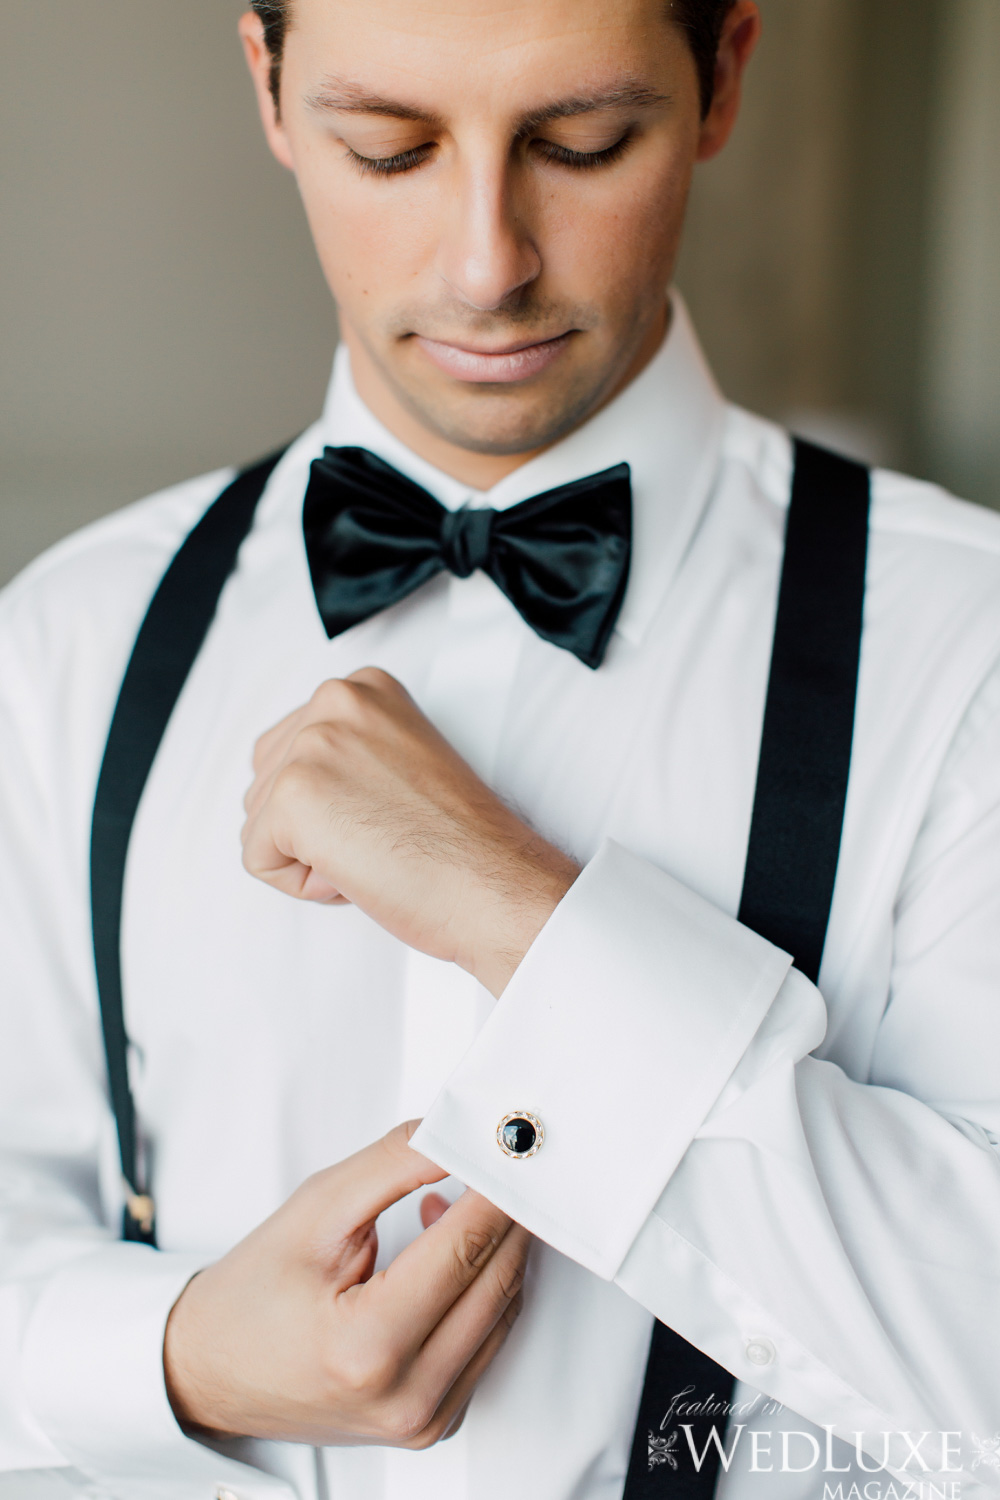 Groom's tux - Korry's